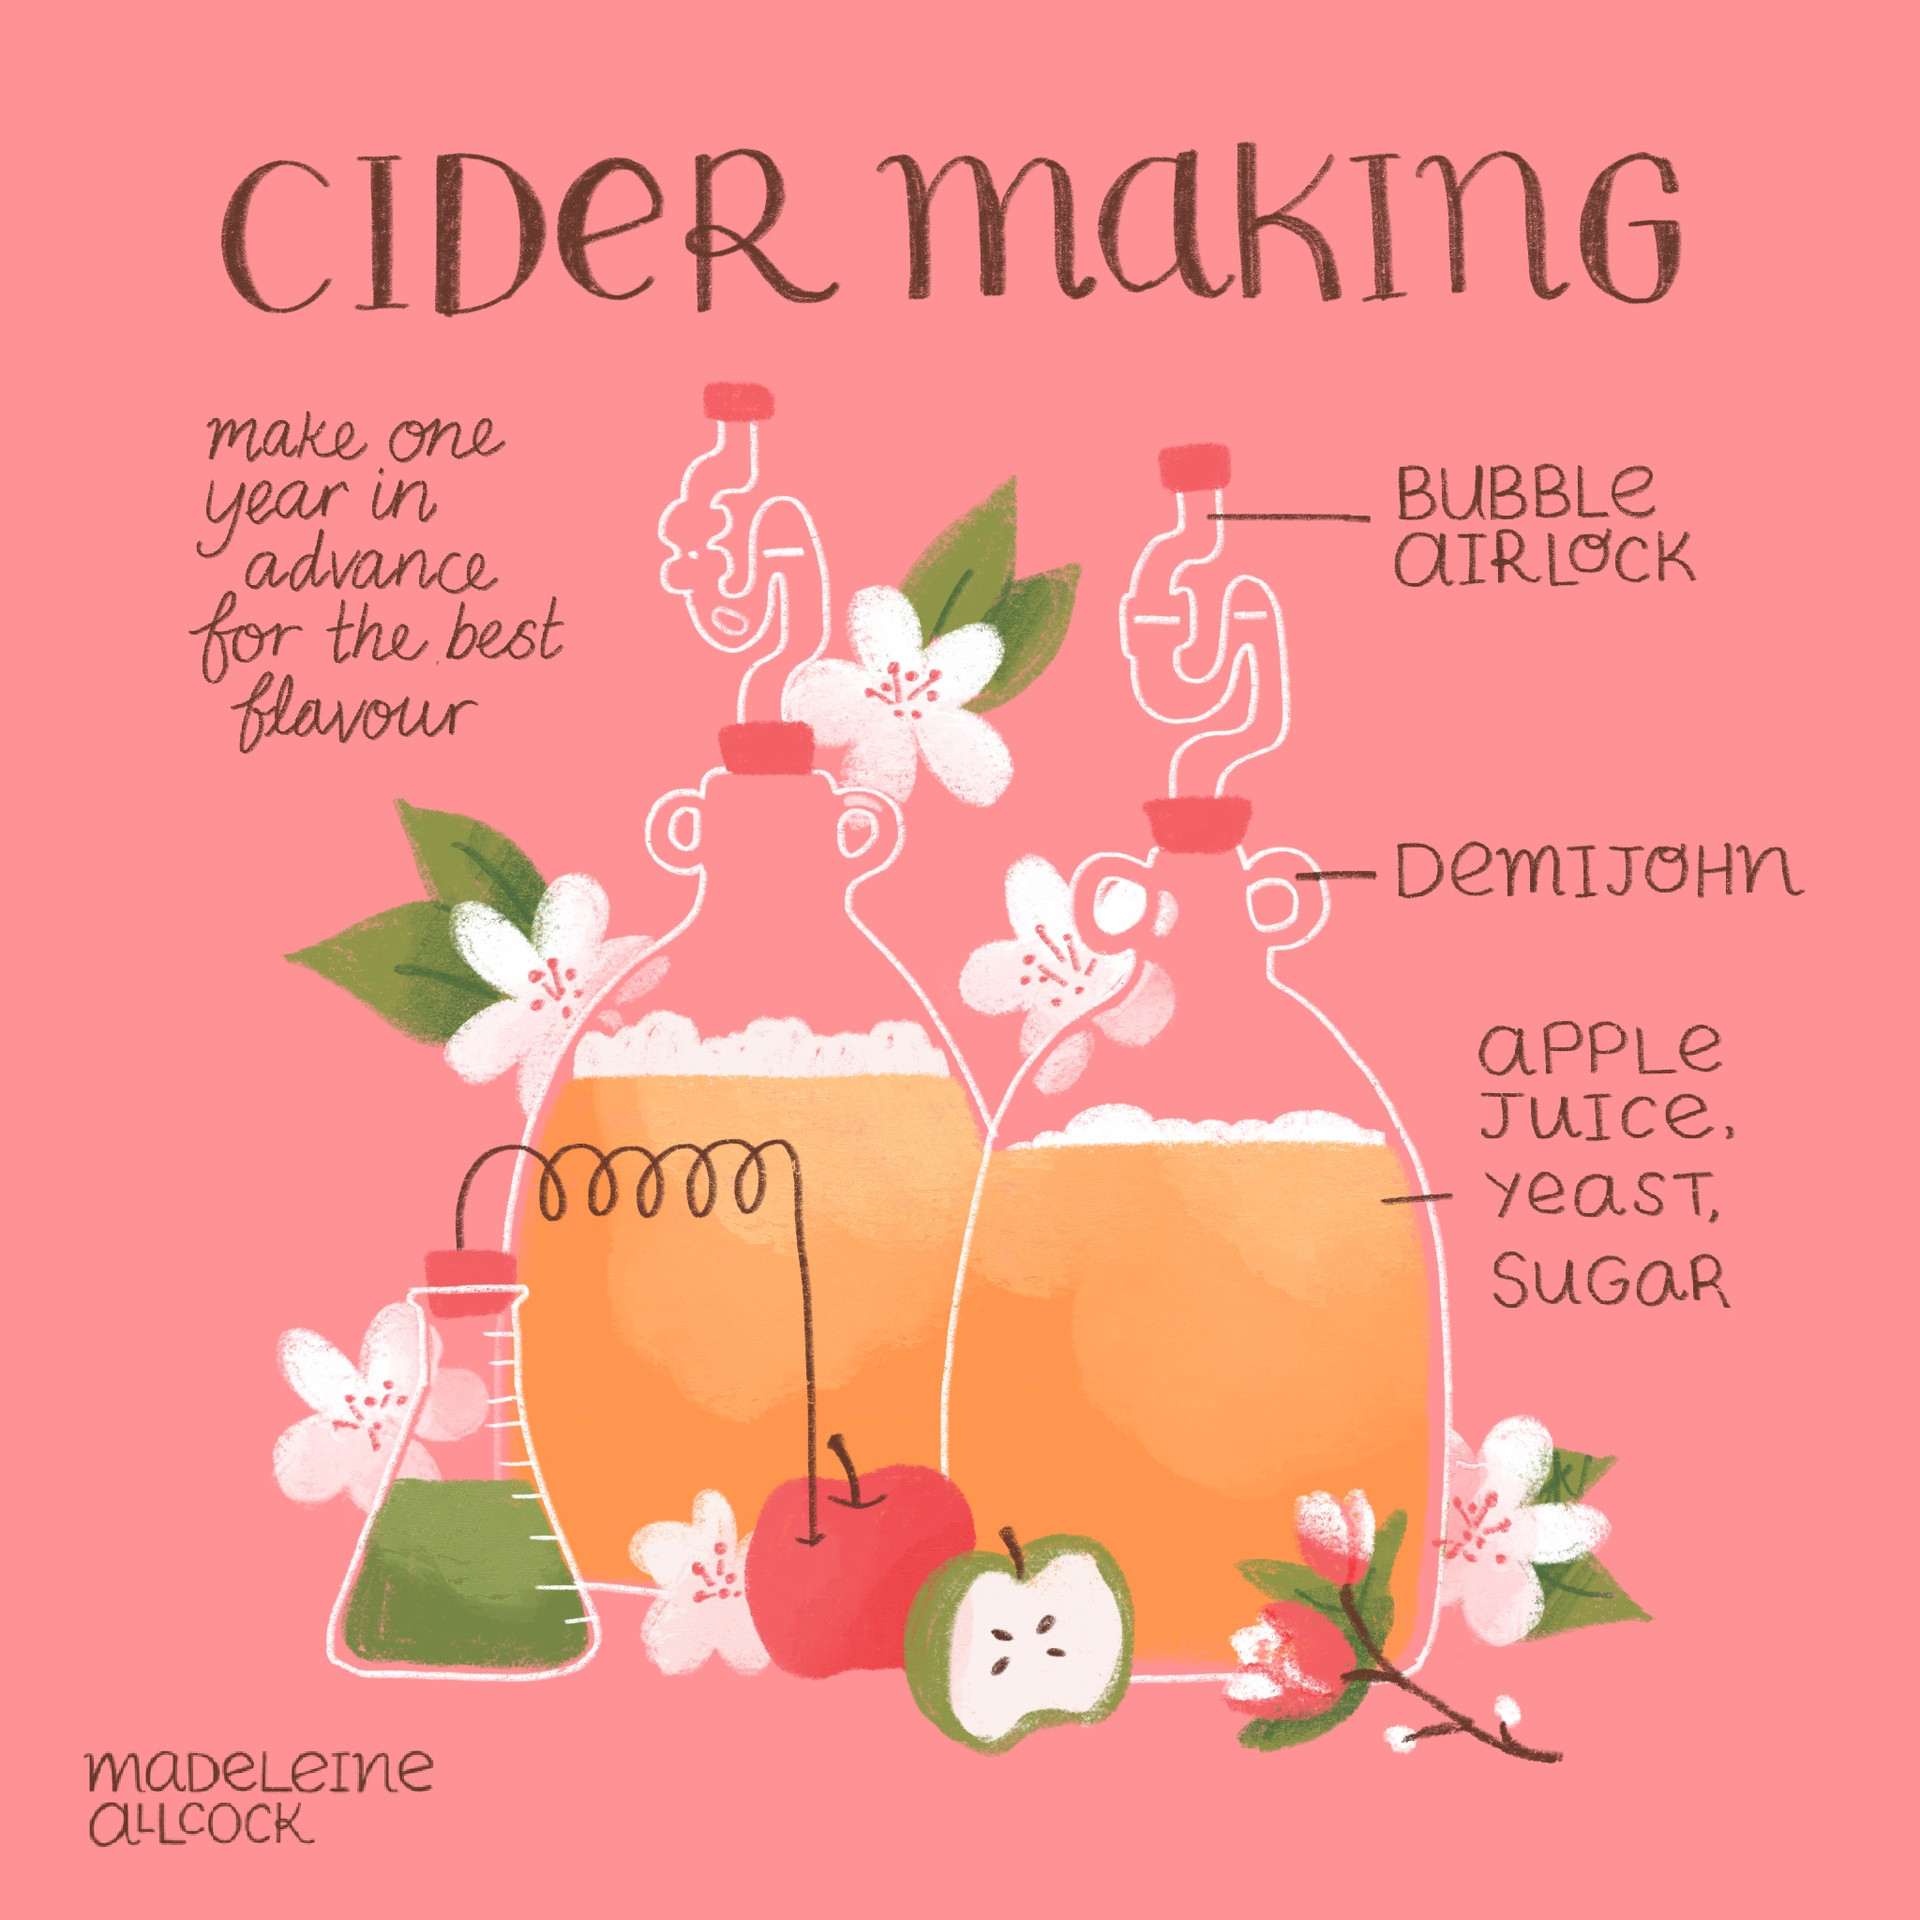 Cider Making – Lifestyle